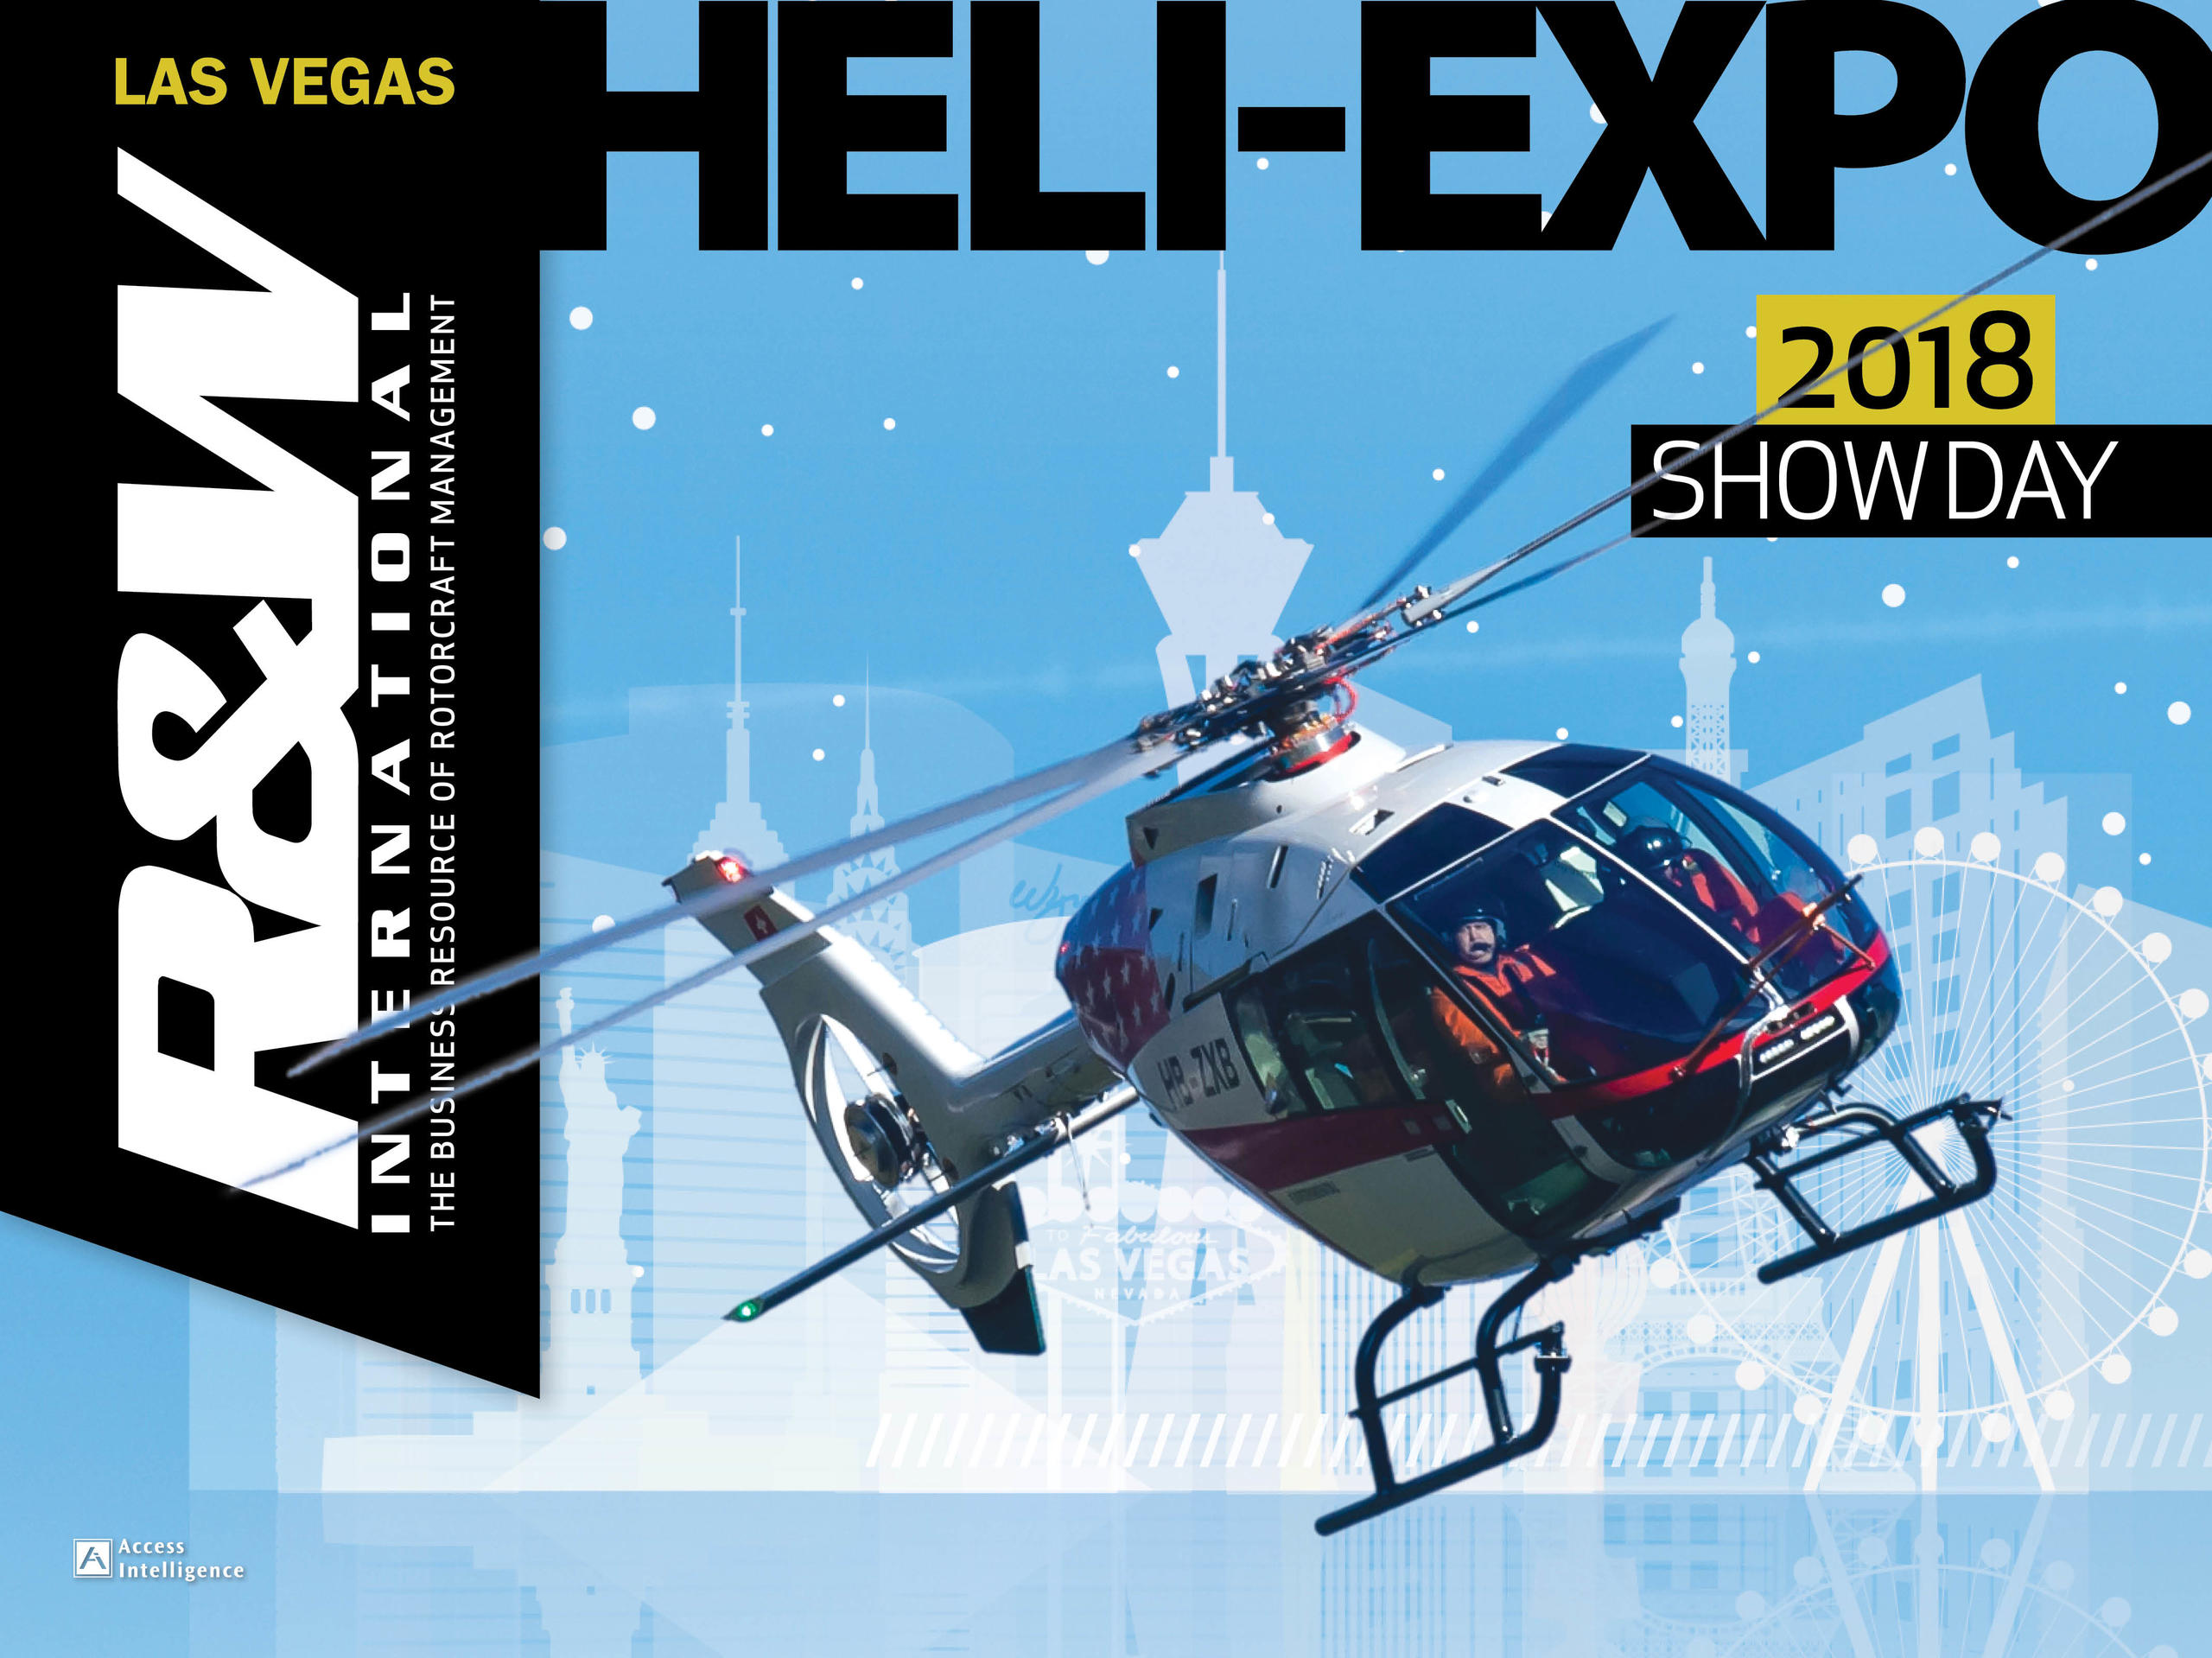 Heli-Expo Show Day 2018 - Heli-Expo Show News and Happenings | Rotor